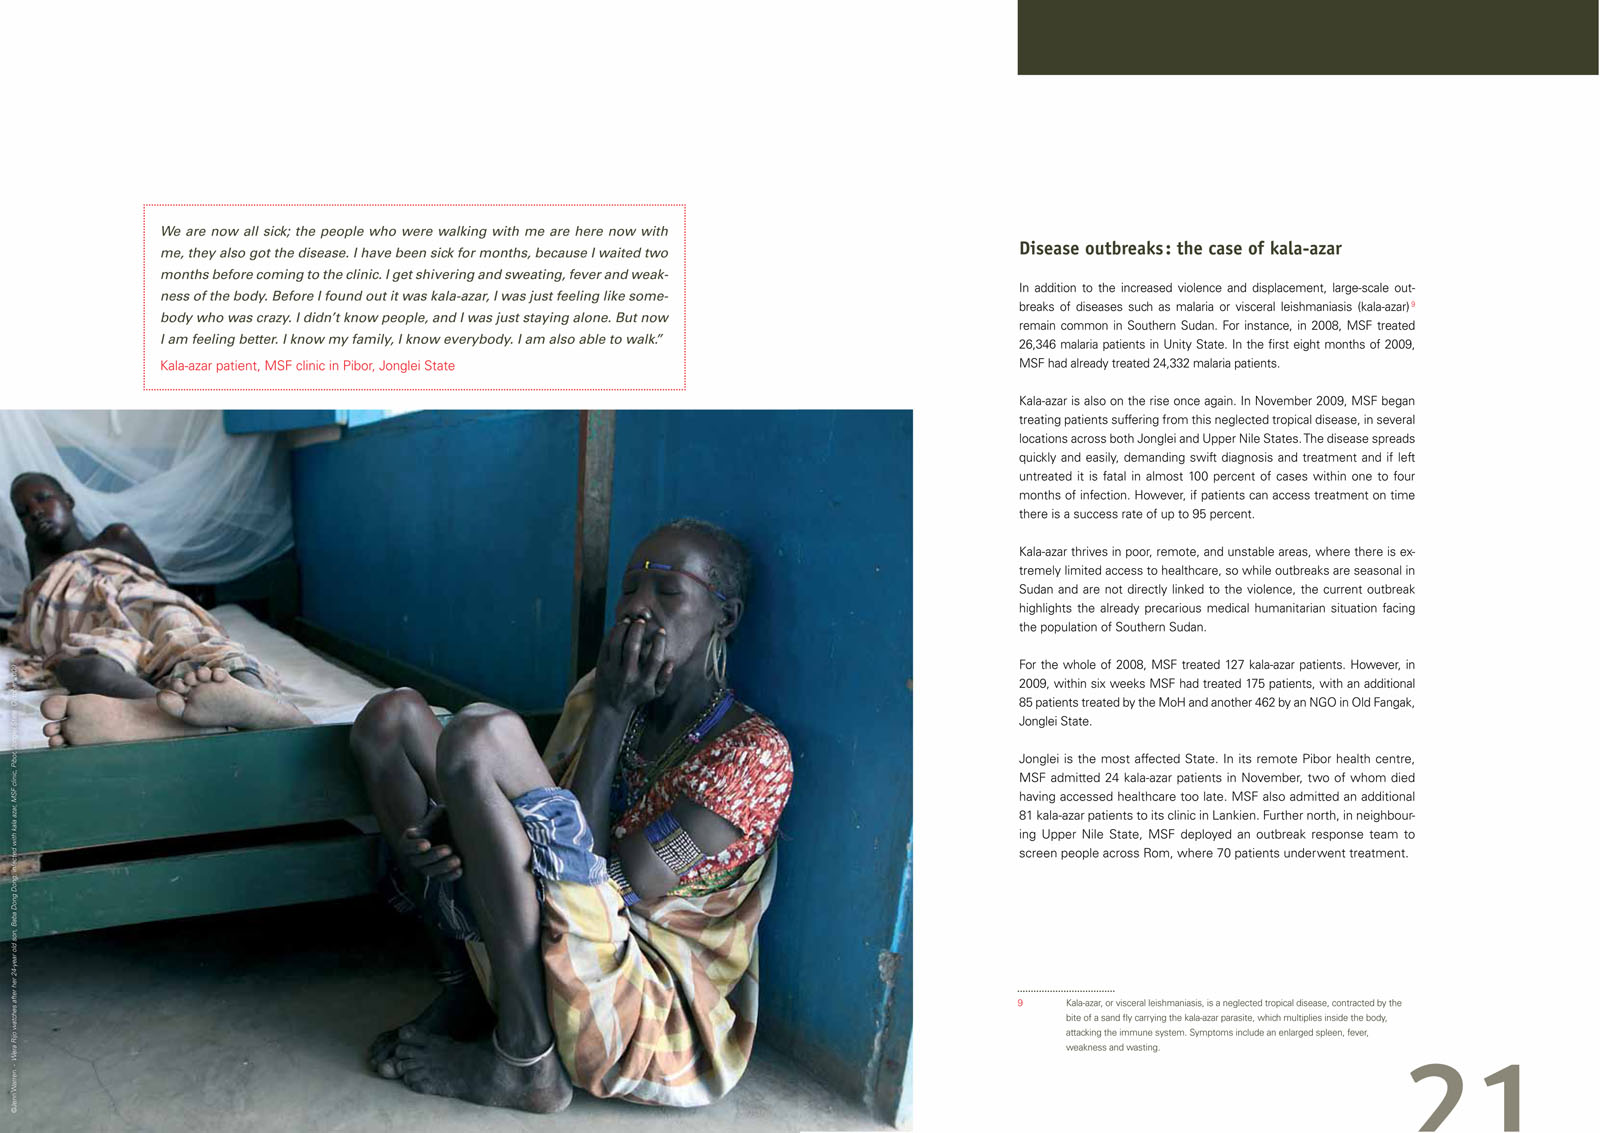 Facing up to Reality: Health Crisis Deepens as Violence Escalates in Southern SudanMédecins Sans Frontières, December 2009